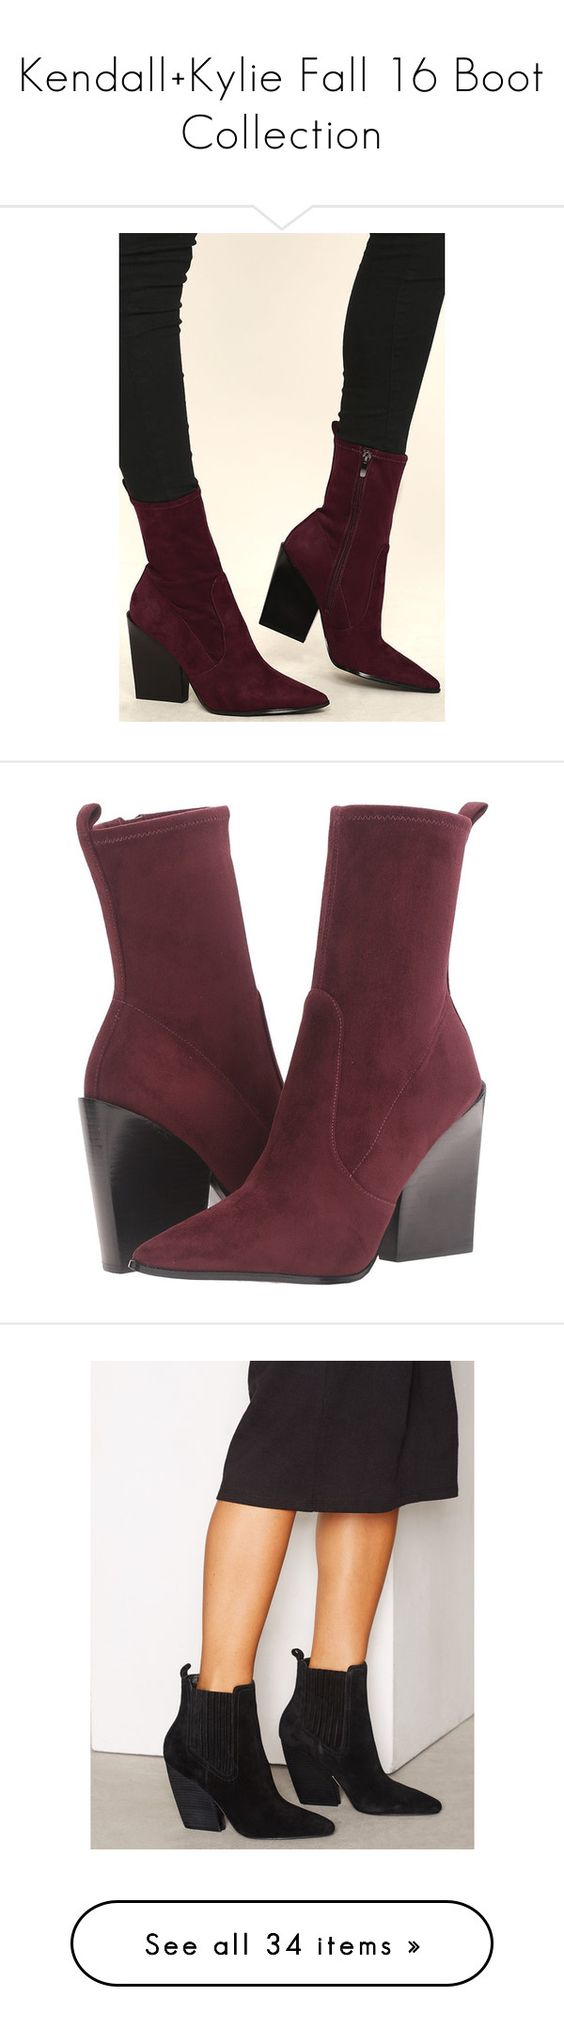 """""""Kendall+Kylie Fall 16 Boot Collection"""" by stylepersonal ❤ liked on Polyvore featuring shoes, boots, red, pointed-toe boots, zip boots, red suede boots, red mid calf boots, suede boots, pumps and burgundy suede shoes"""